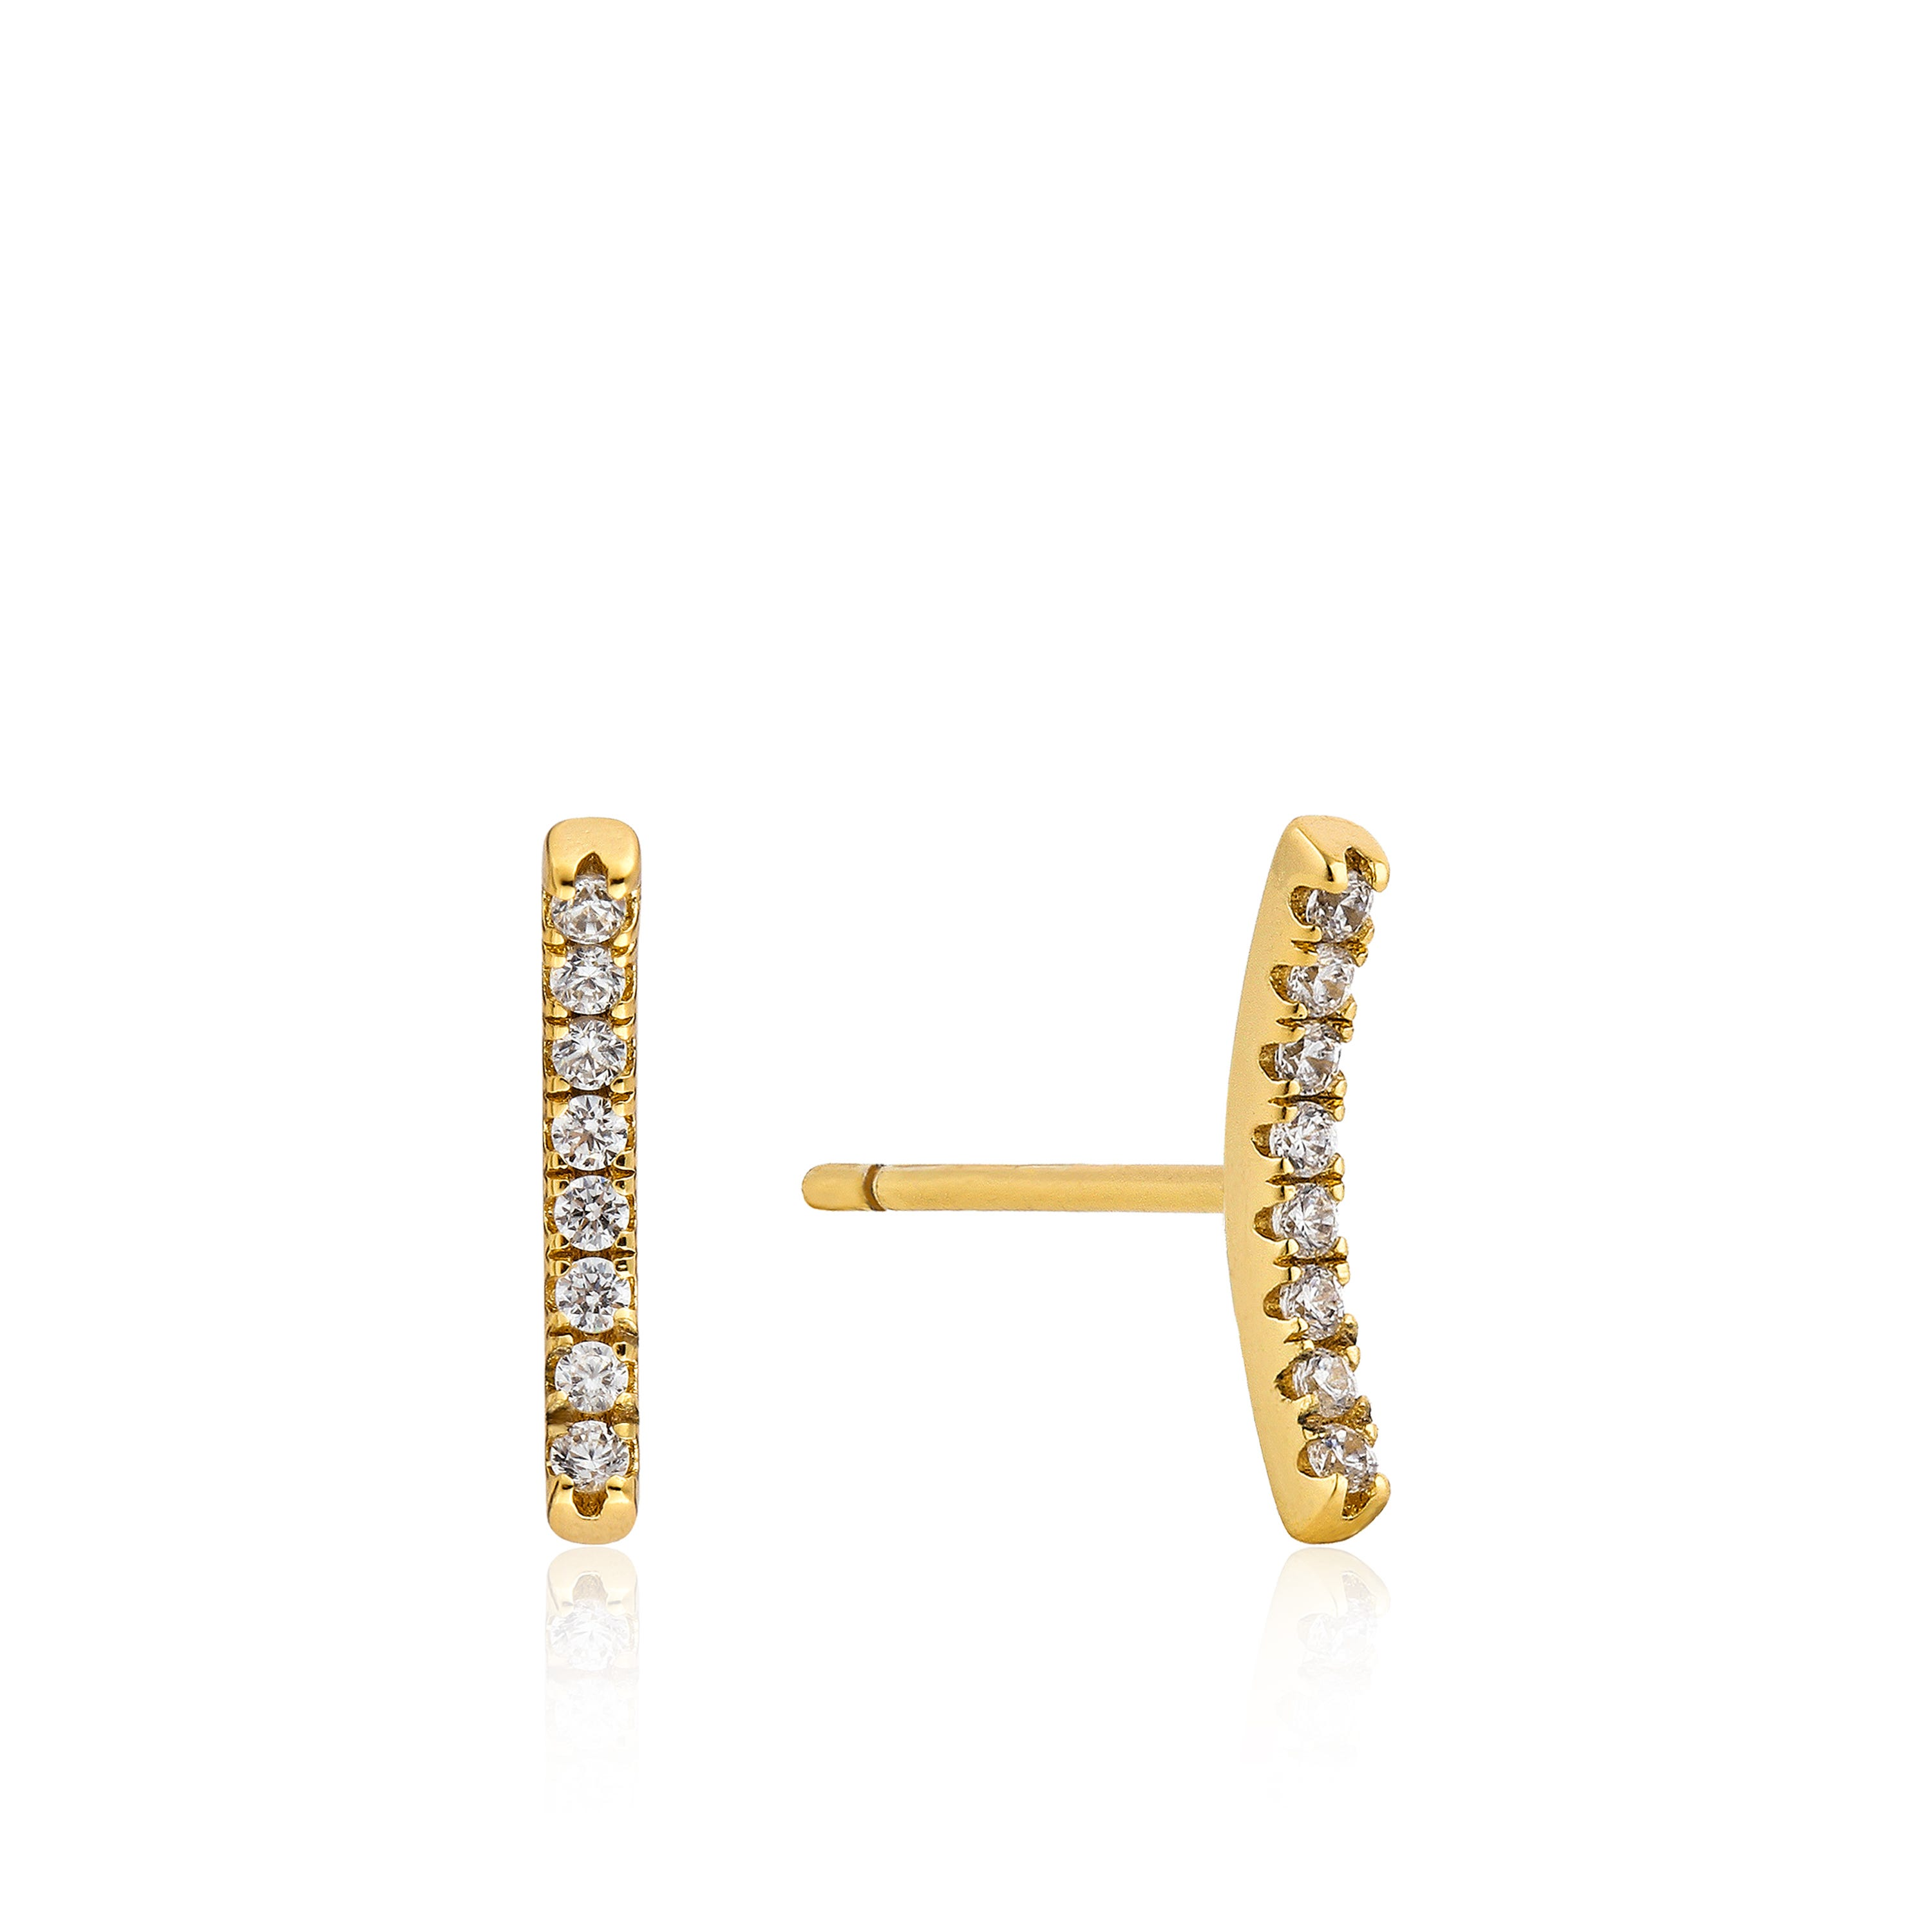 Shimmer Pave Bar Stud Earrings in Sterling Silver/Gold Plated